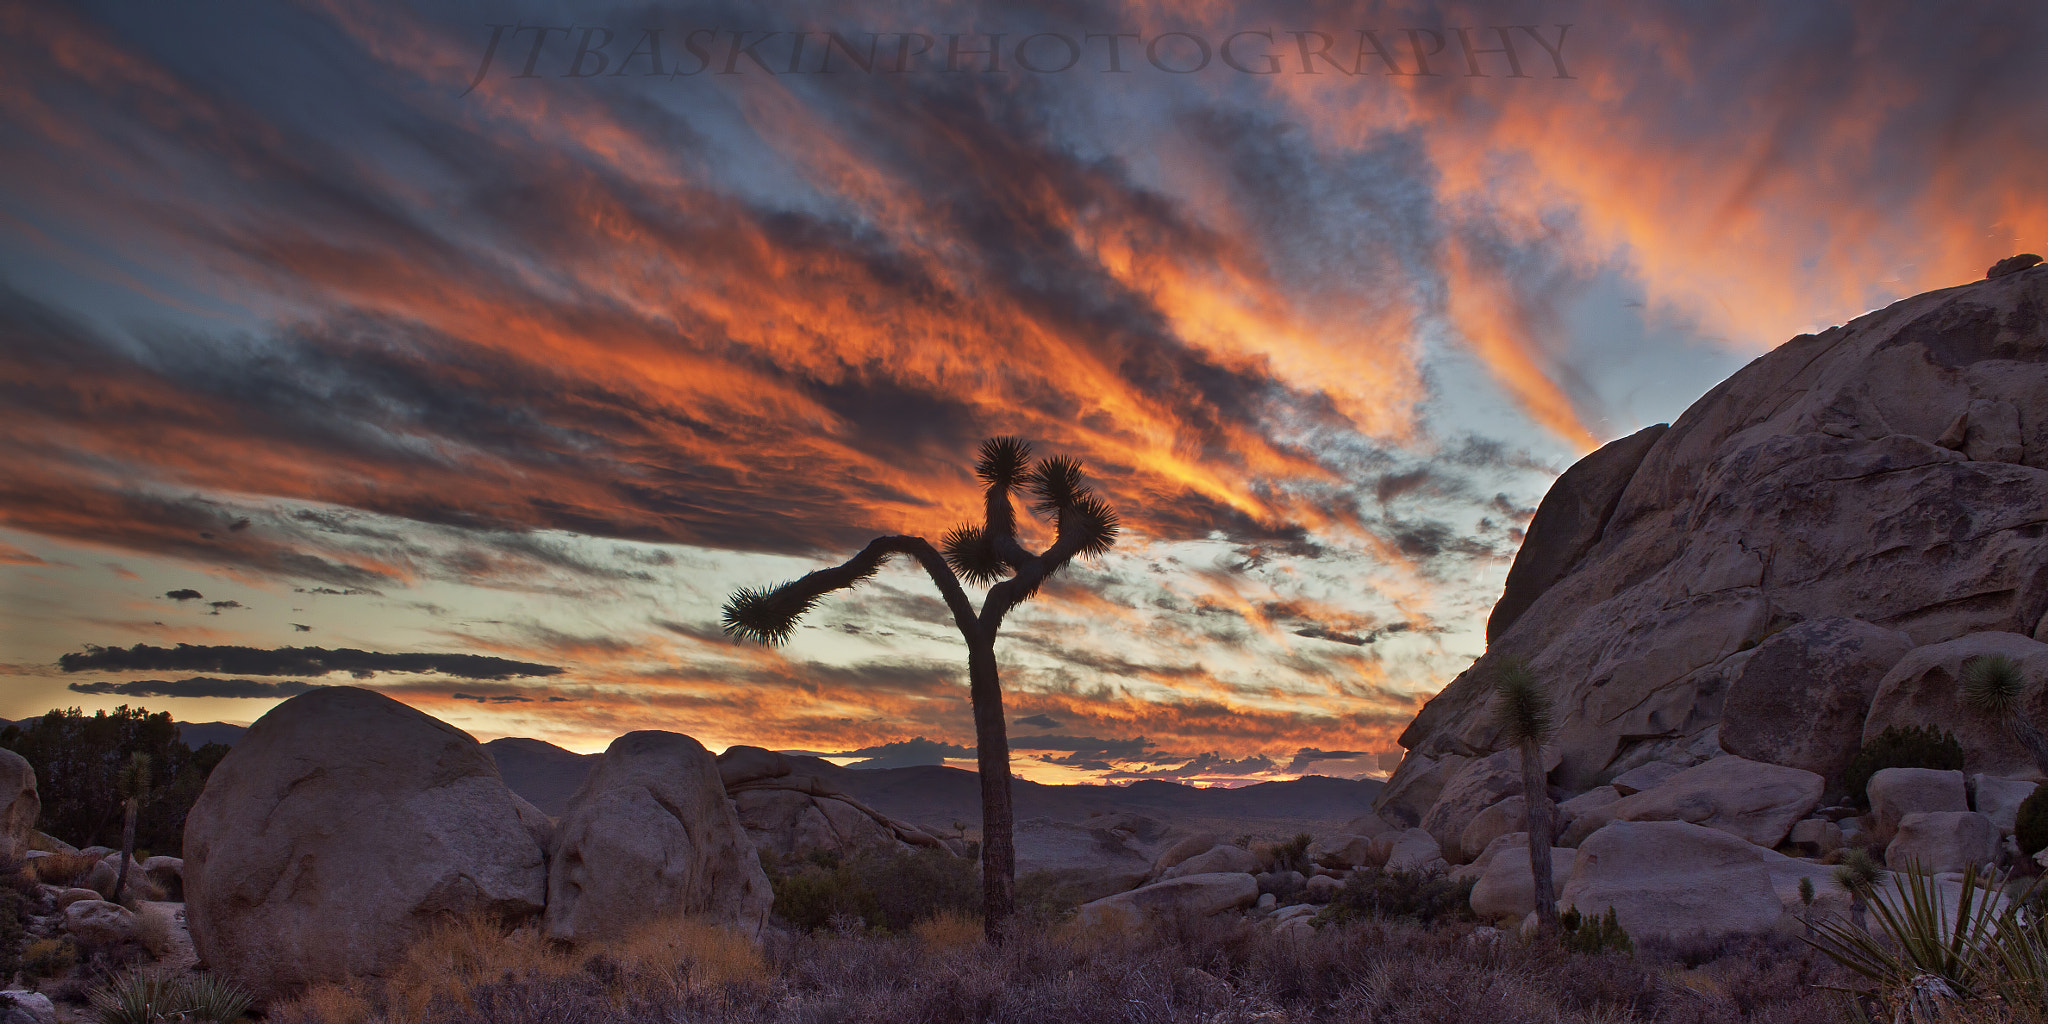 Photograph UntitledLand of Burning Skies - Joshua Tree National Park, CA by taylor baskin on 500px